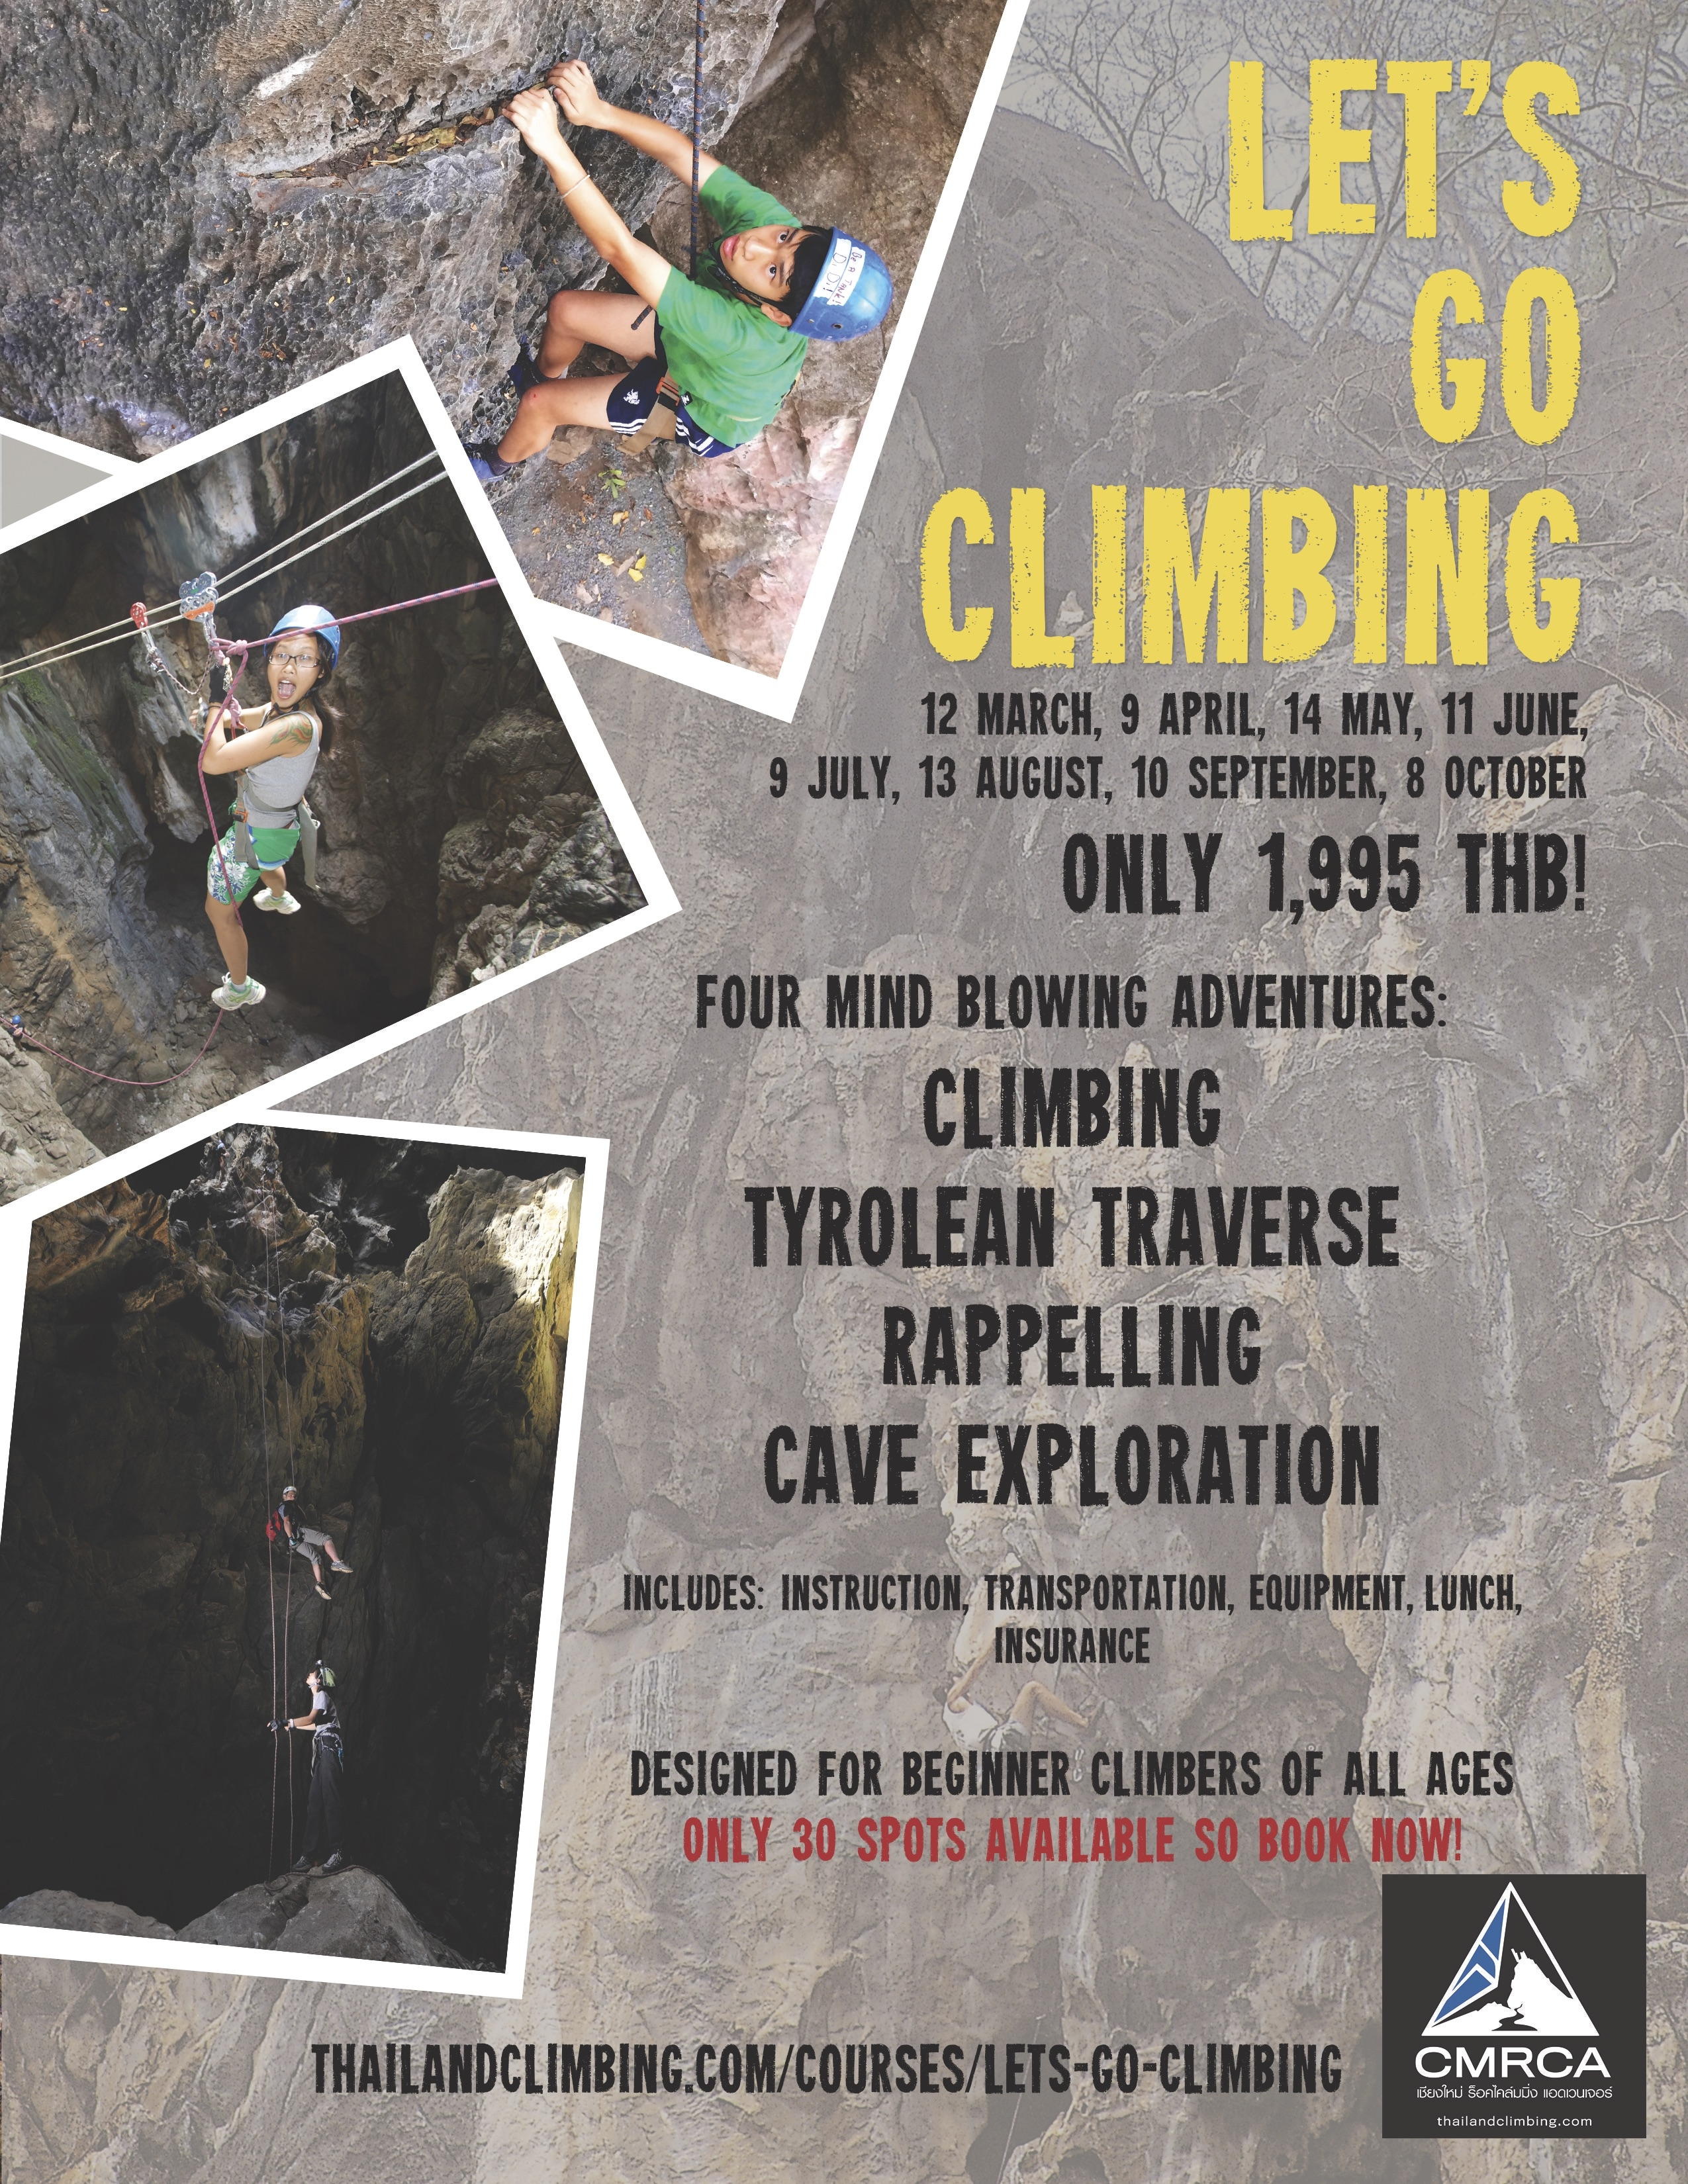 Let's Go Climbing Flyer - 02-2016 for Website